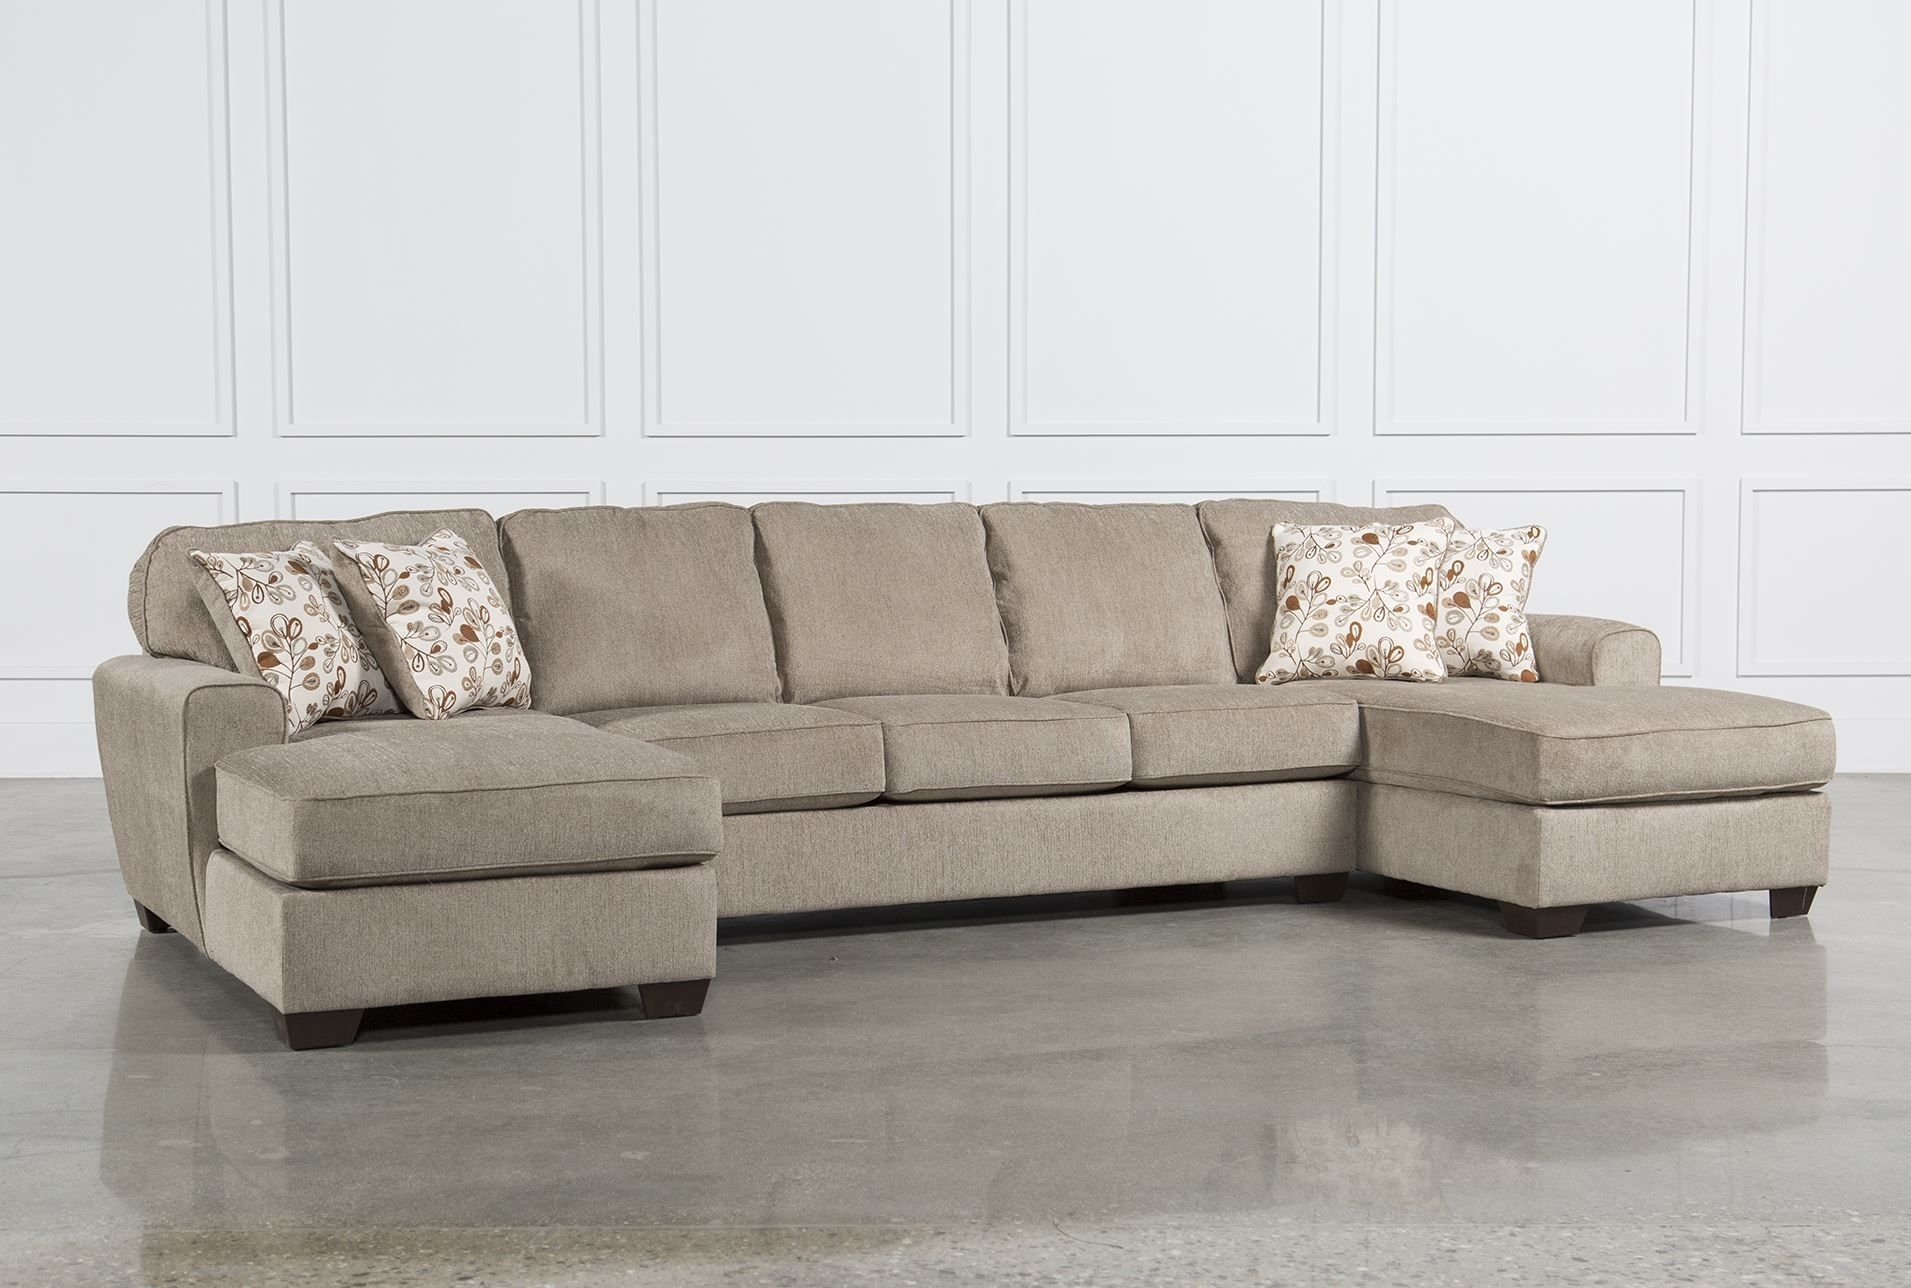 Patola Park 3 Piece Sectional W/2 Corner Chaises   Mountain Modern For Malbry Point 3 Piece Sectionals With Raf Chaise (View 6 of 25)